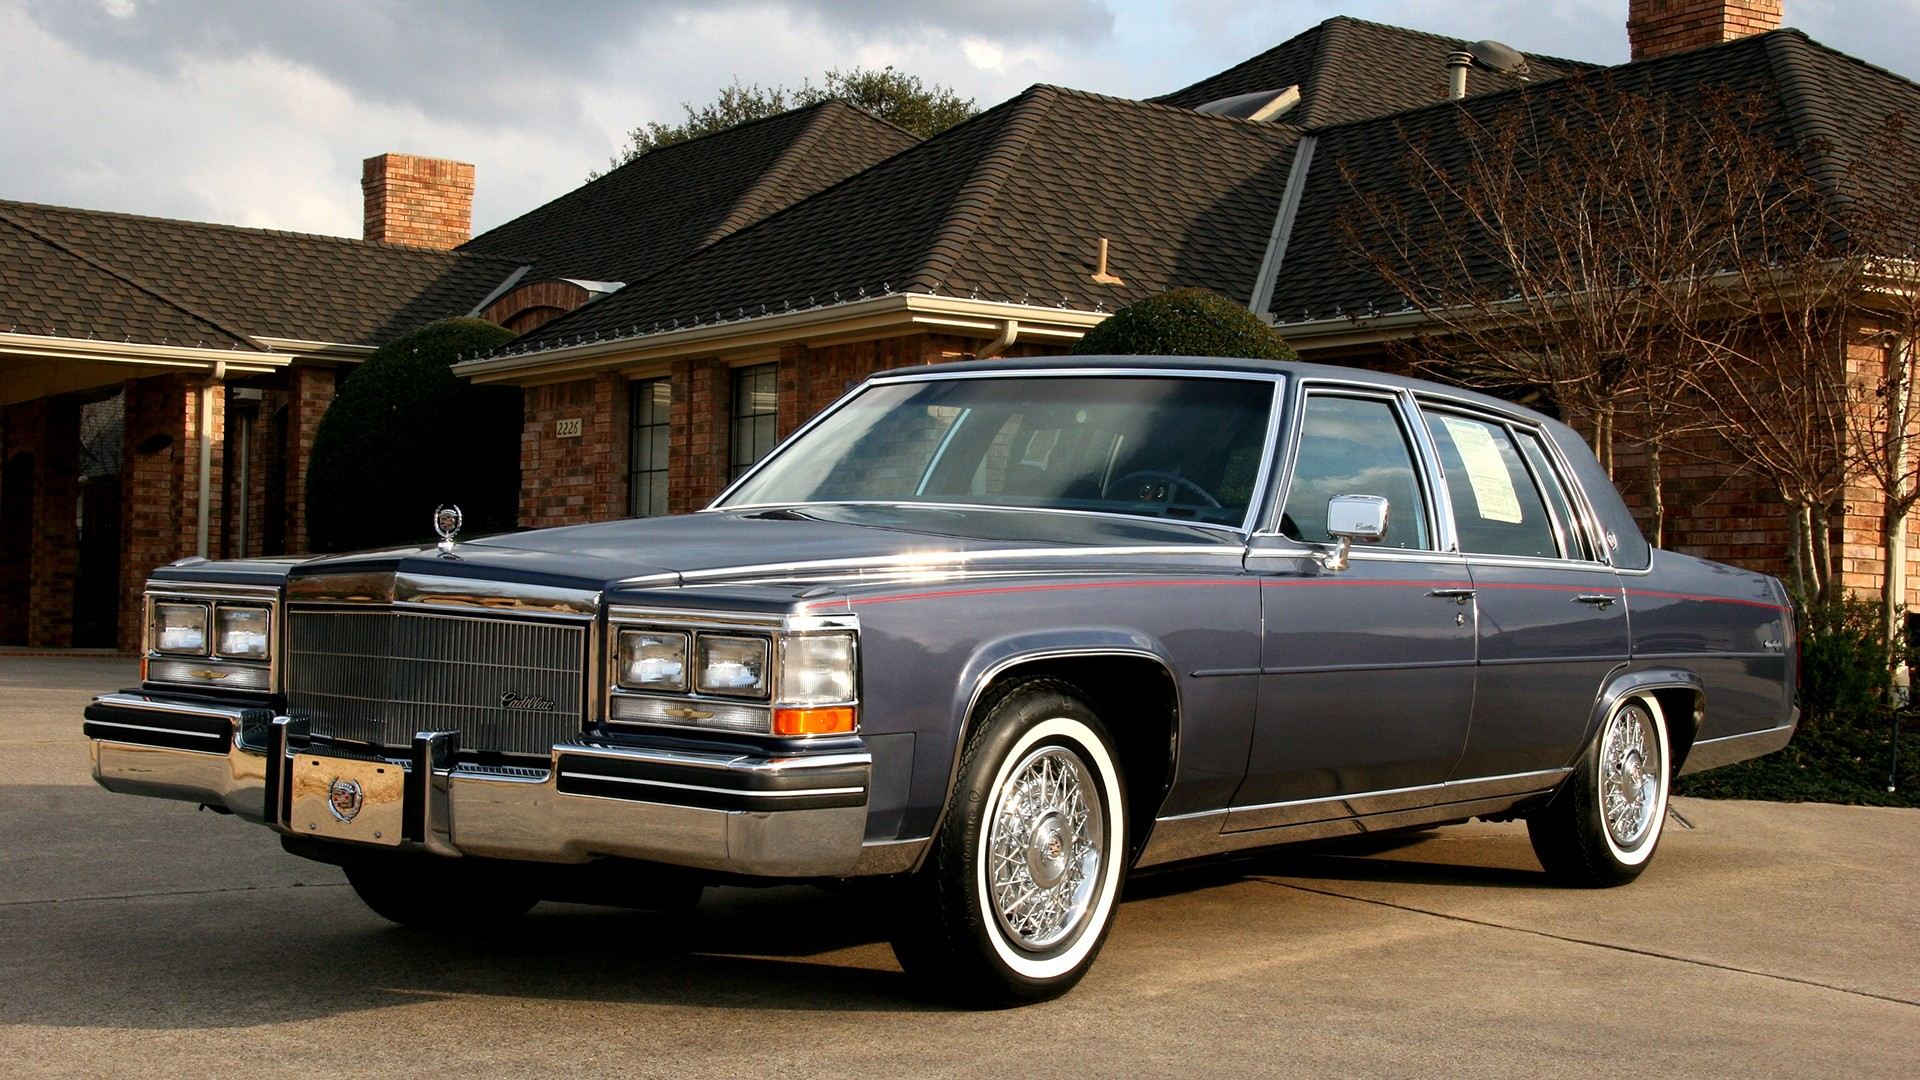 Club America Wallpapers 3d 1 1984 Cadillac Fleetwood Hd Wallpapers Backgrounds